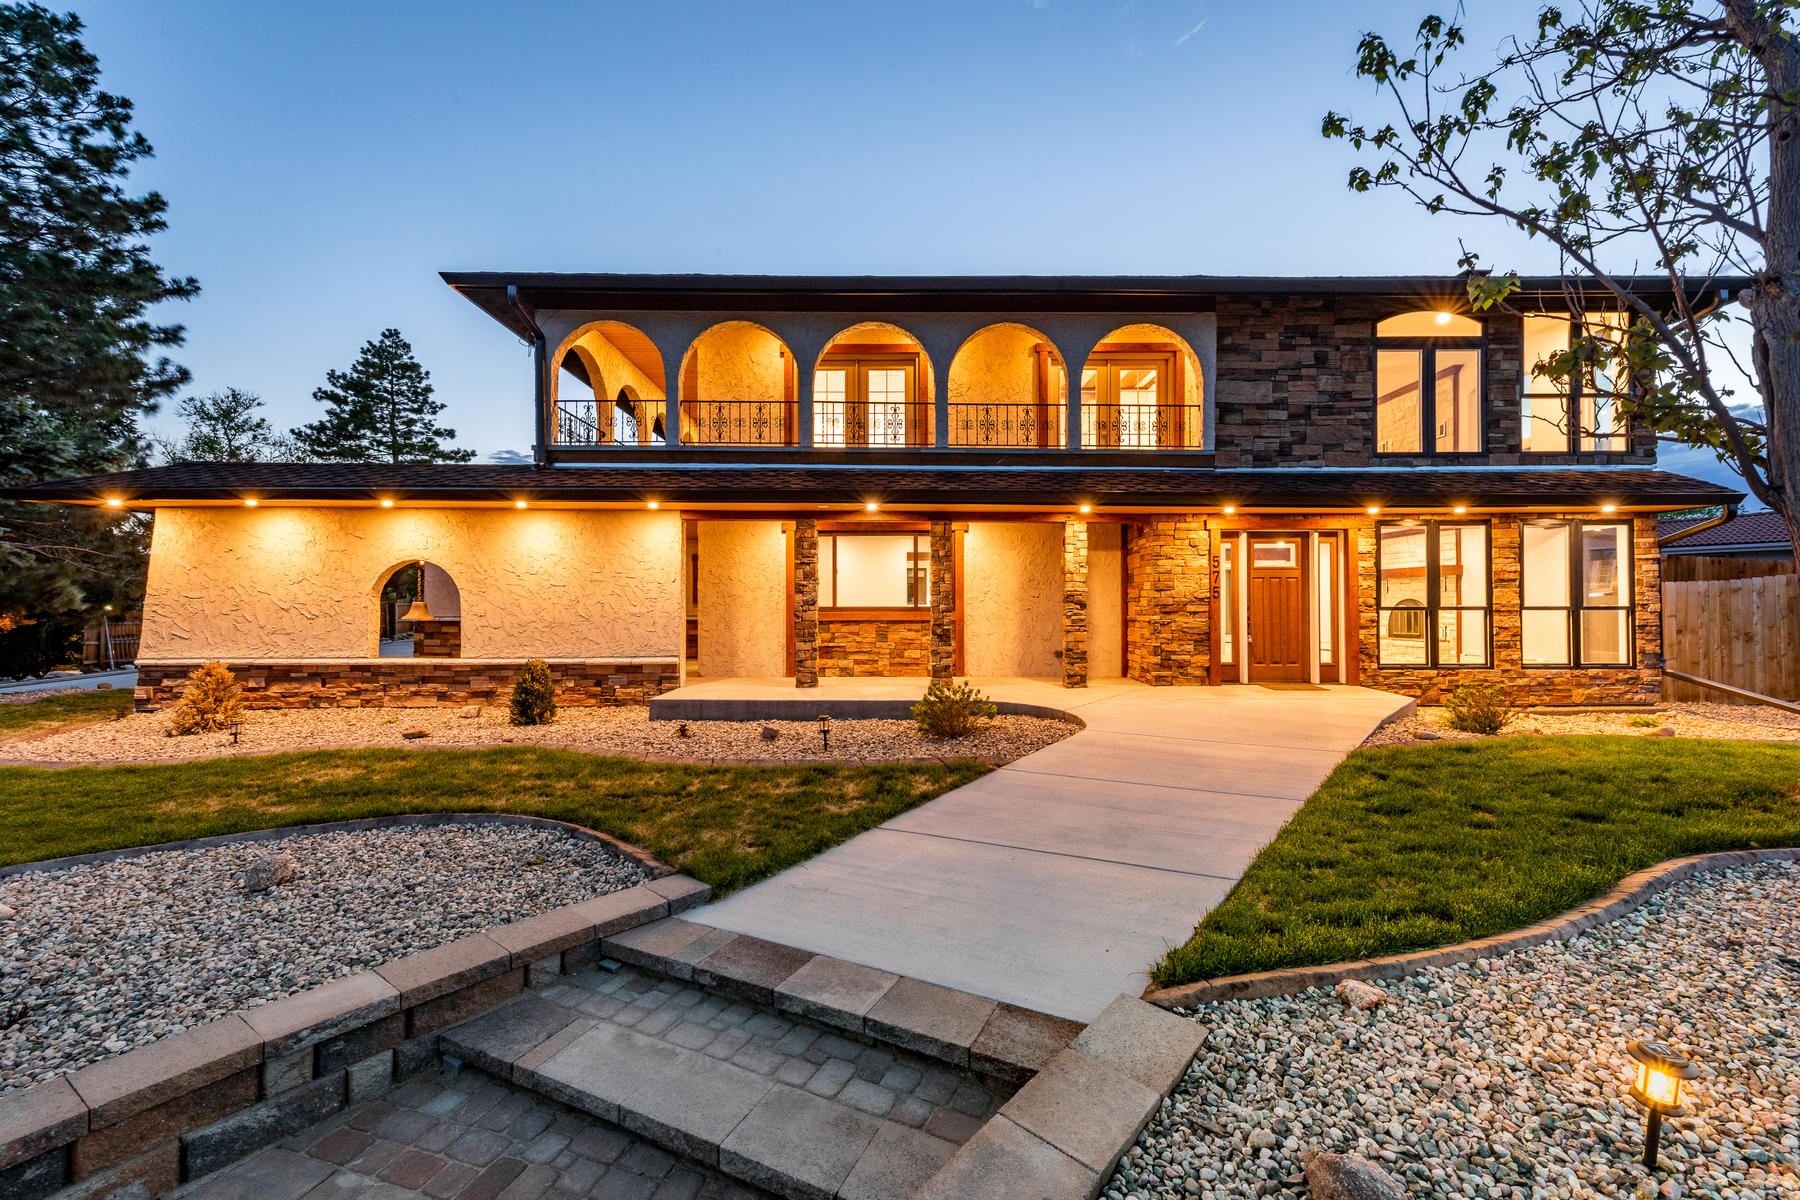 Single Family Homes for Sale at This extraordinary home sits atop a hill on over a half acre! 575 S Nelson Street Lakewood, Colorado 80226 United States